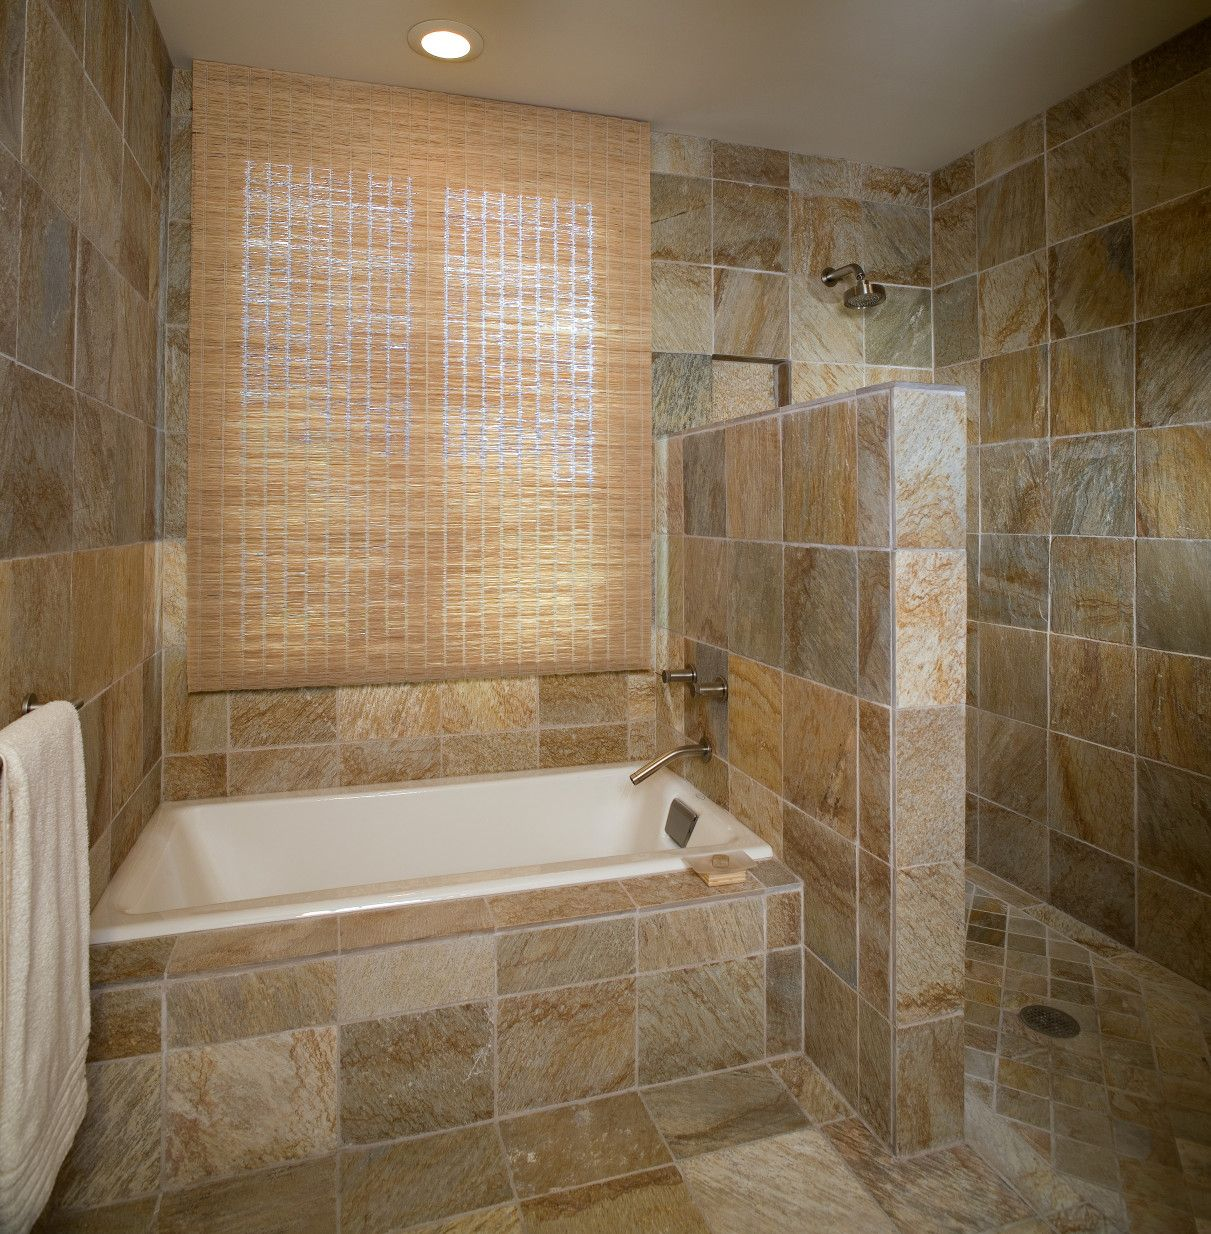 2019 Bath Remodel Pittsburgh Lowes Paint Colors Interior Check More At Http 1coolair Com B Bathroom Remodel Cost Bathroom Renovation Cost Bathrooms Remodel